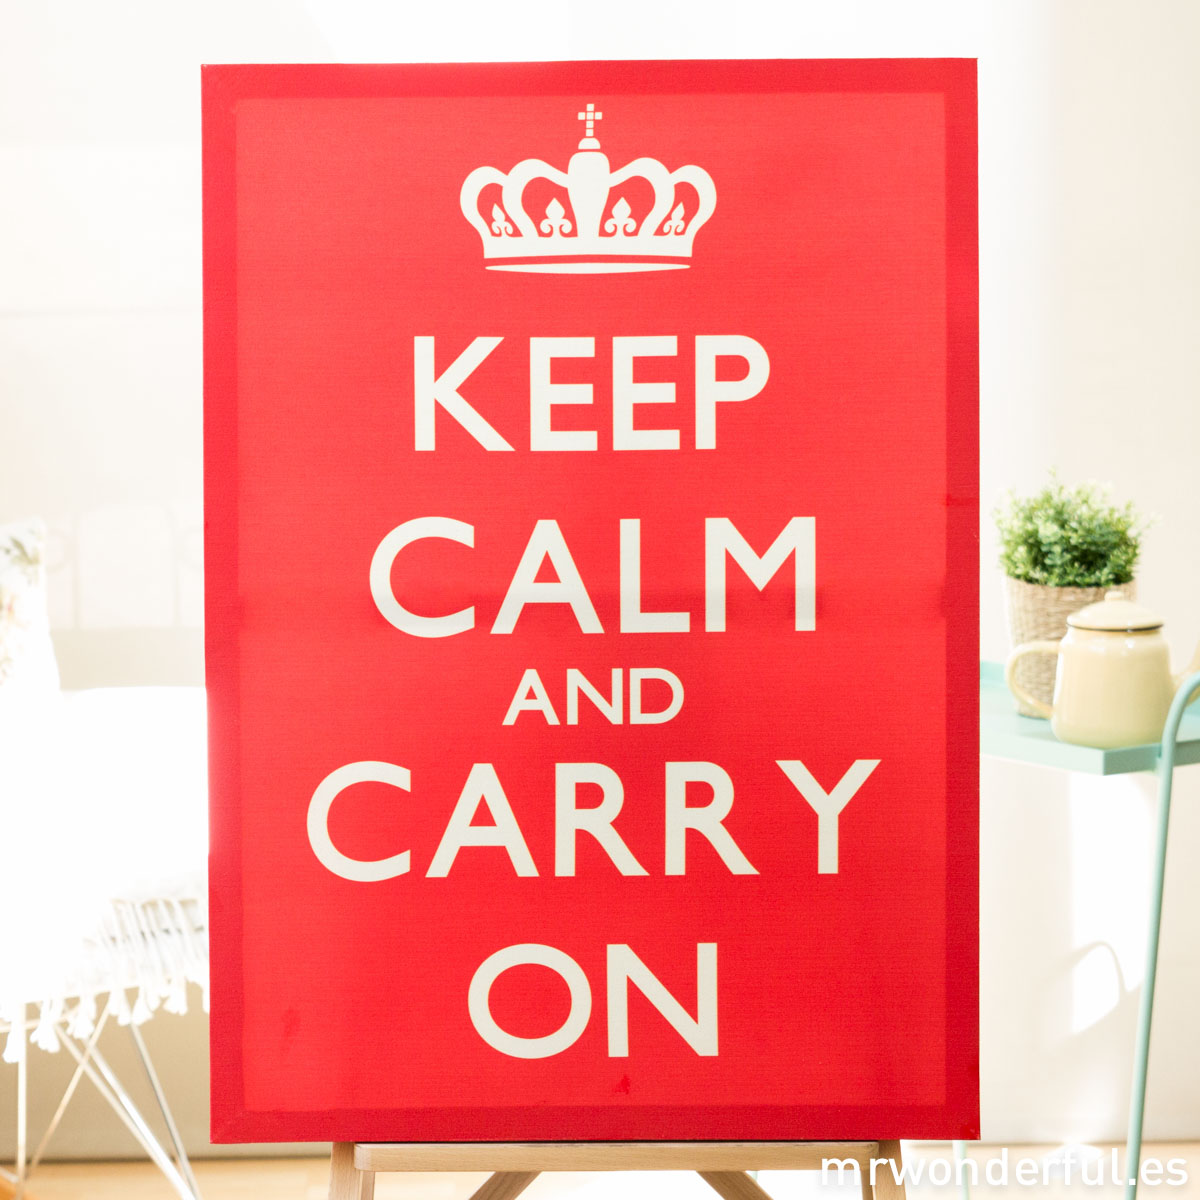 mrwonderful_WP0898A_2_keep-calm-carry-on-1